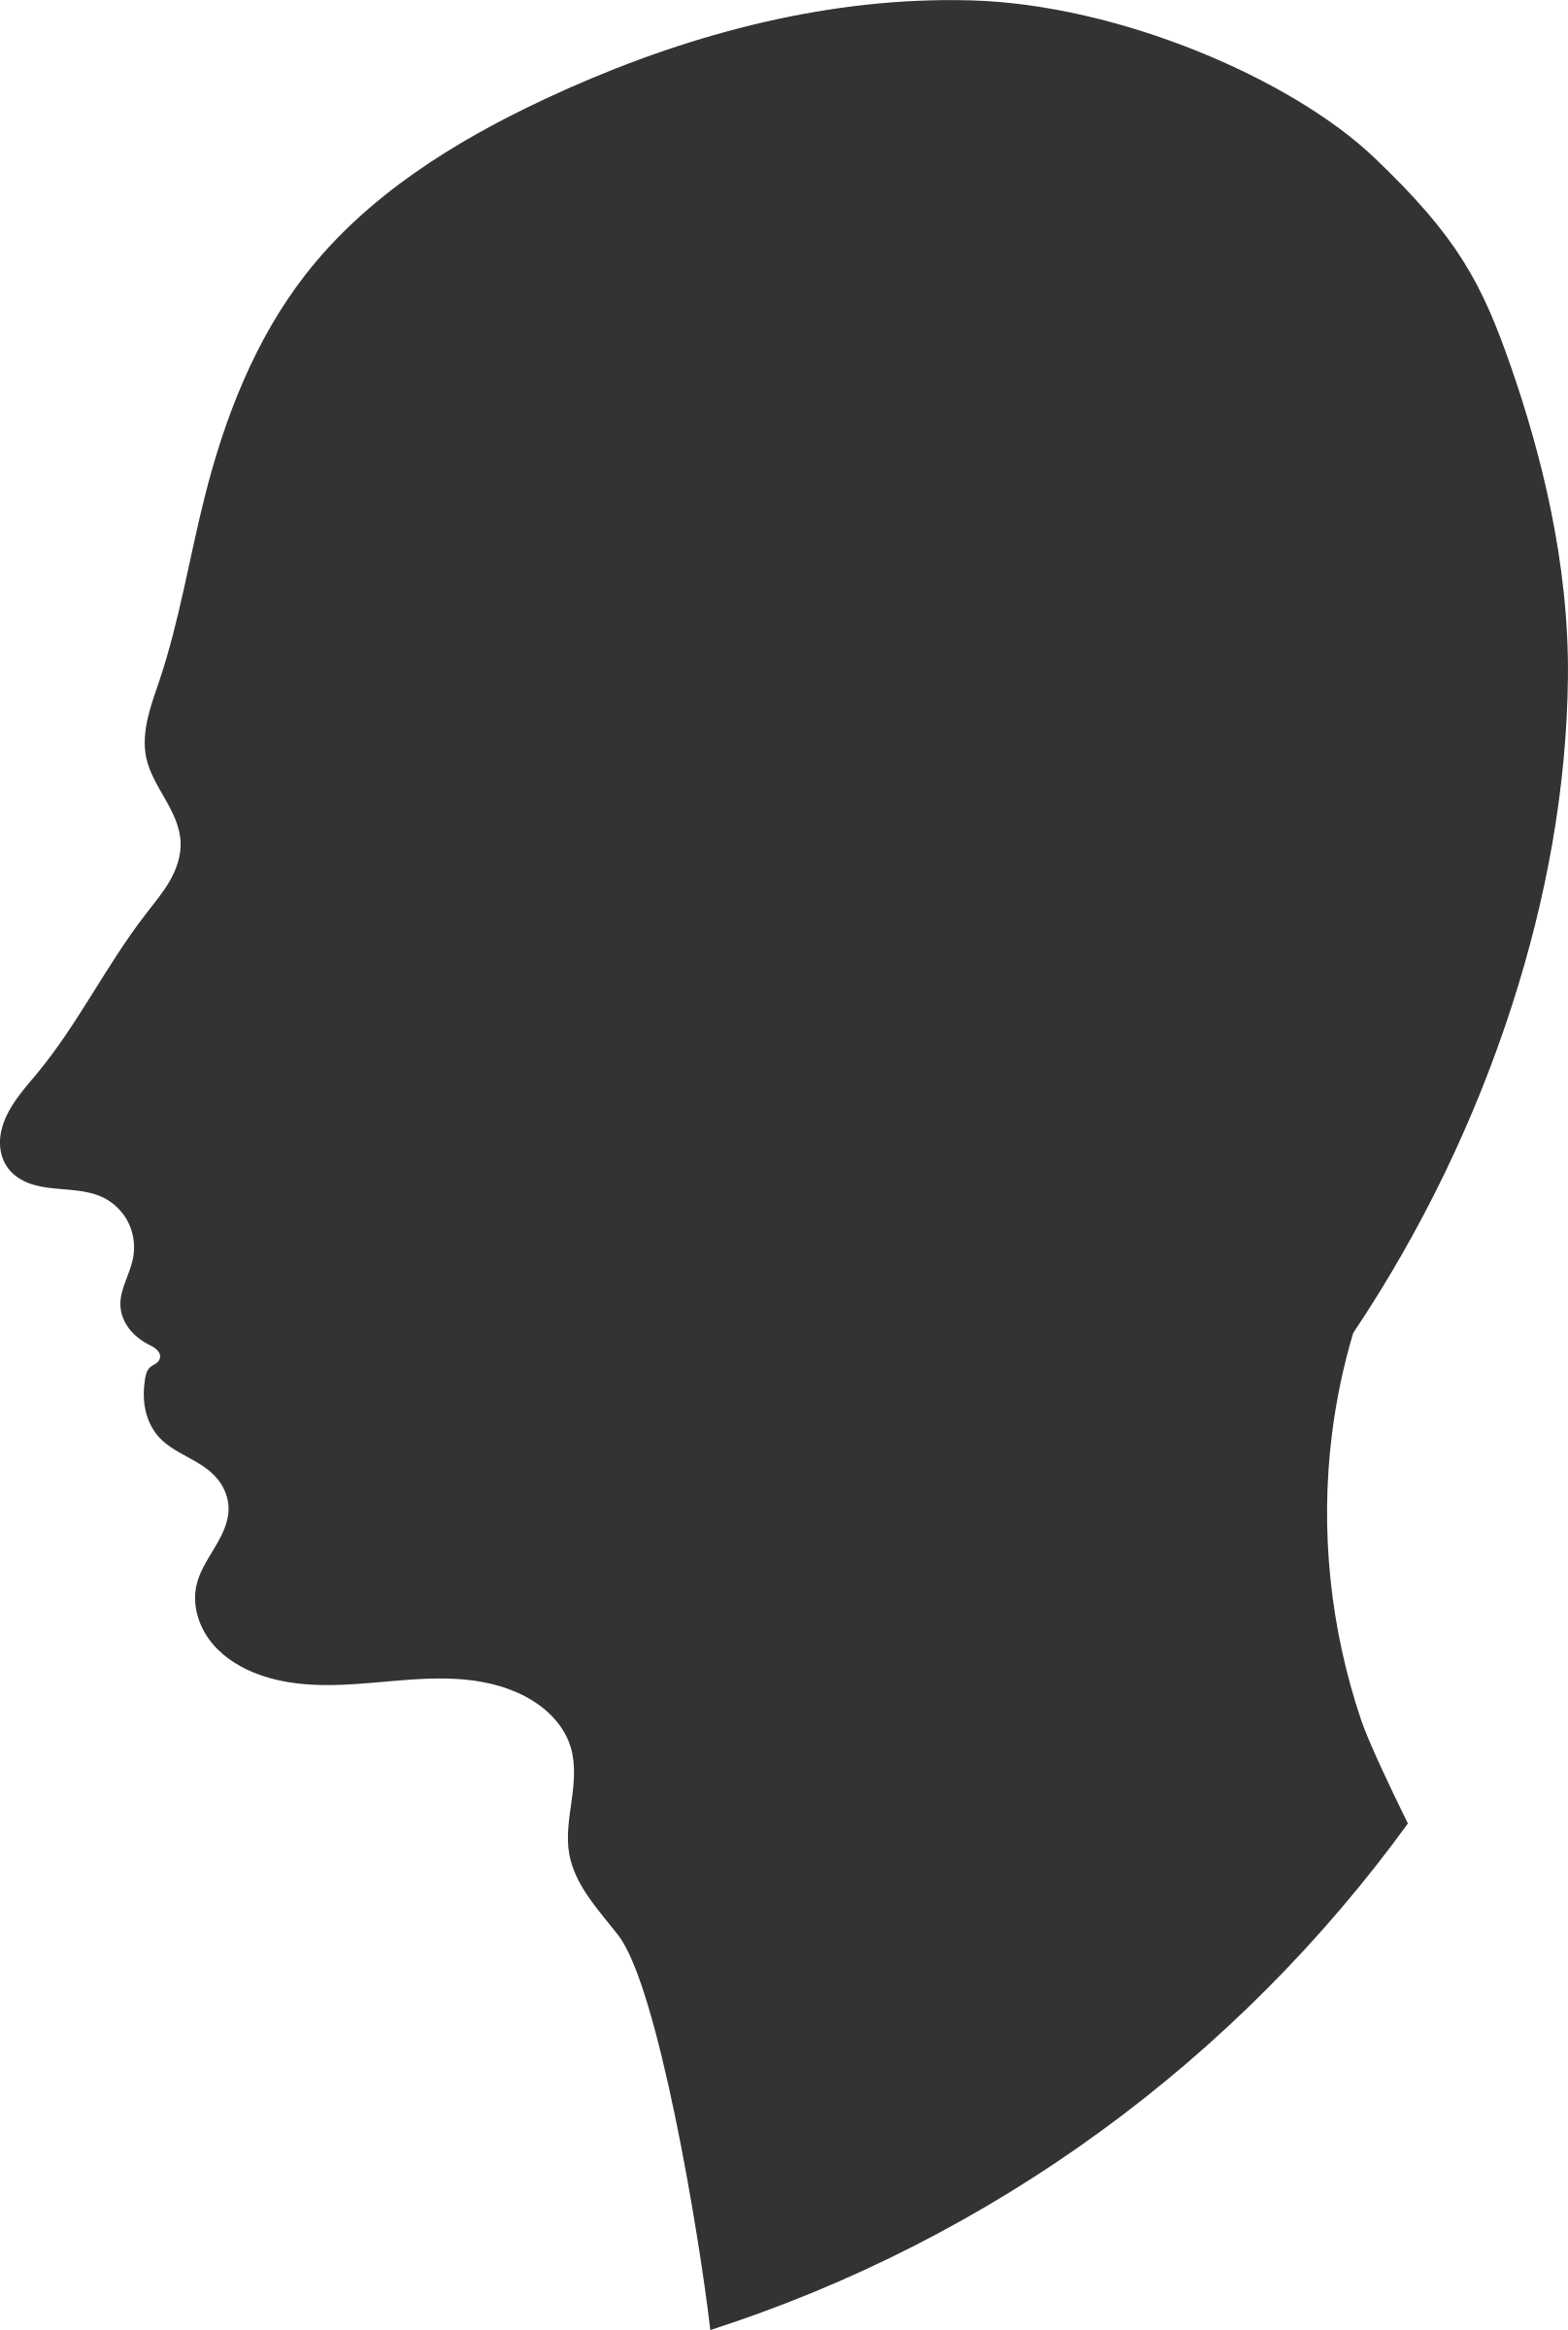 Head png. Profile icons free and